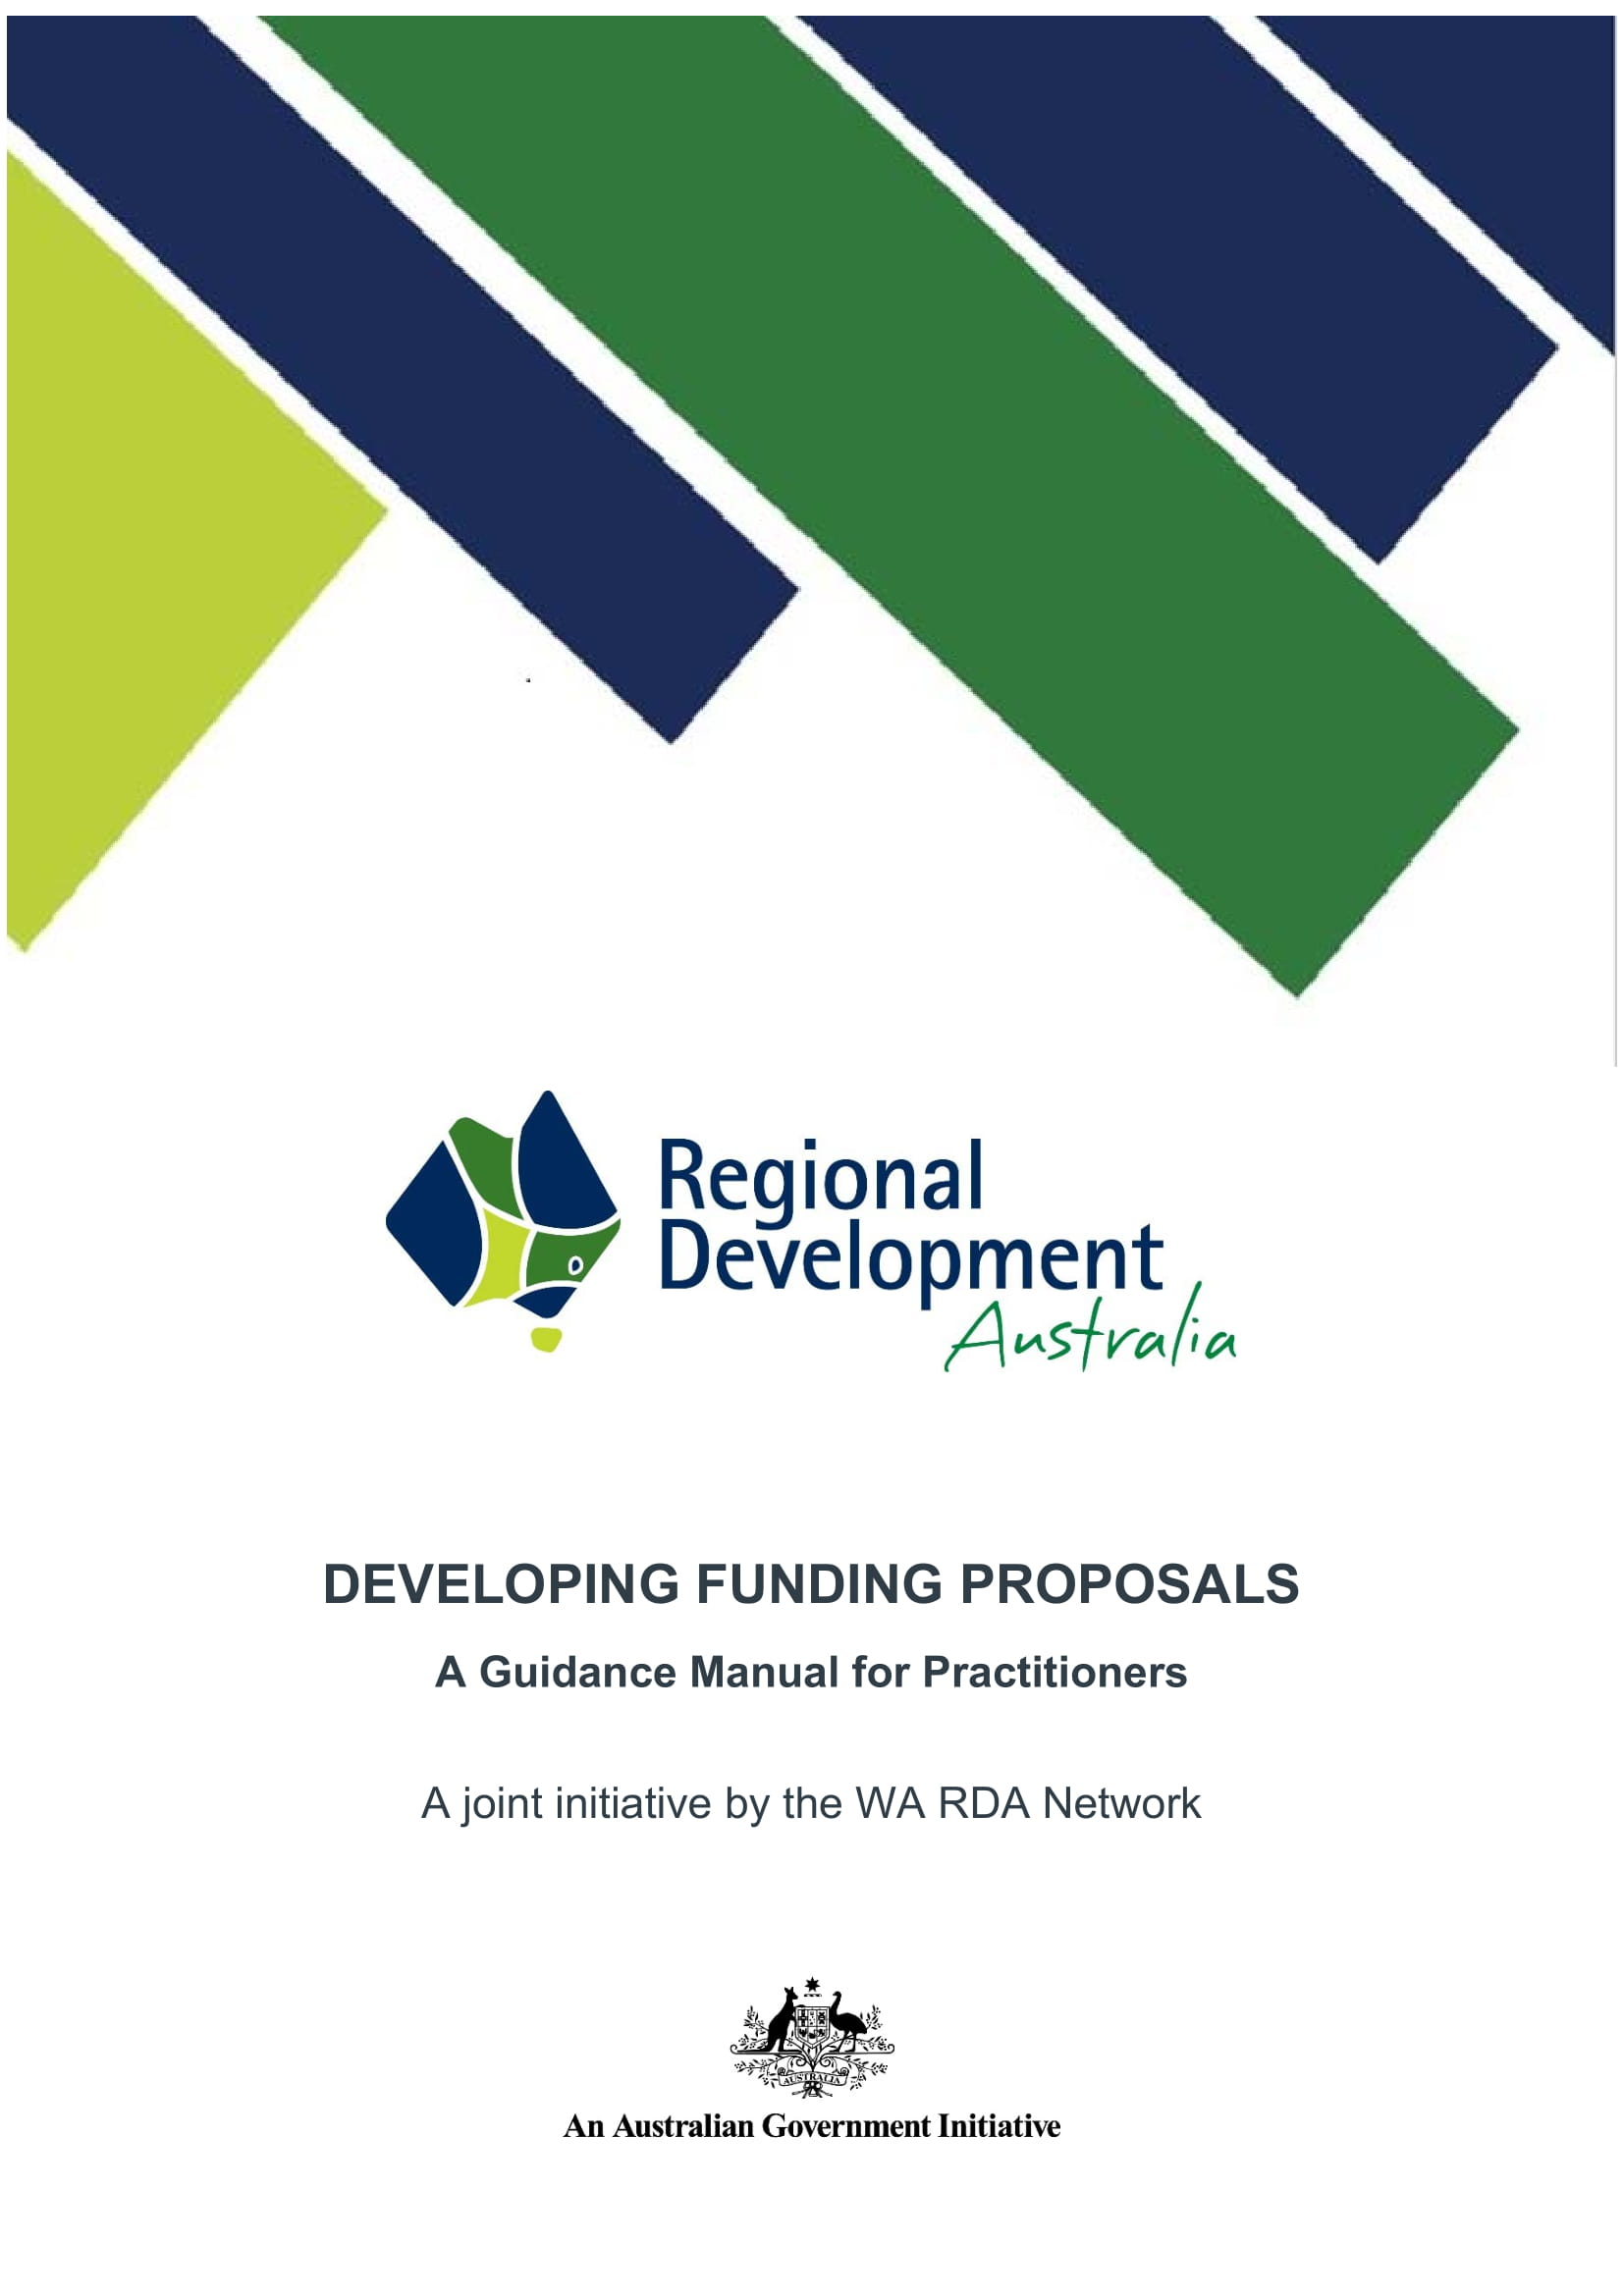 RDA-Kimberley-Developing-Funding-Proposals-Cover